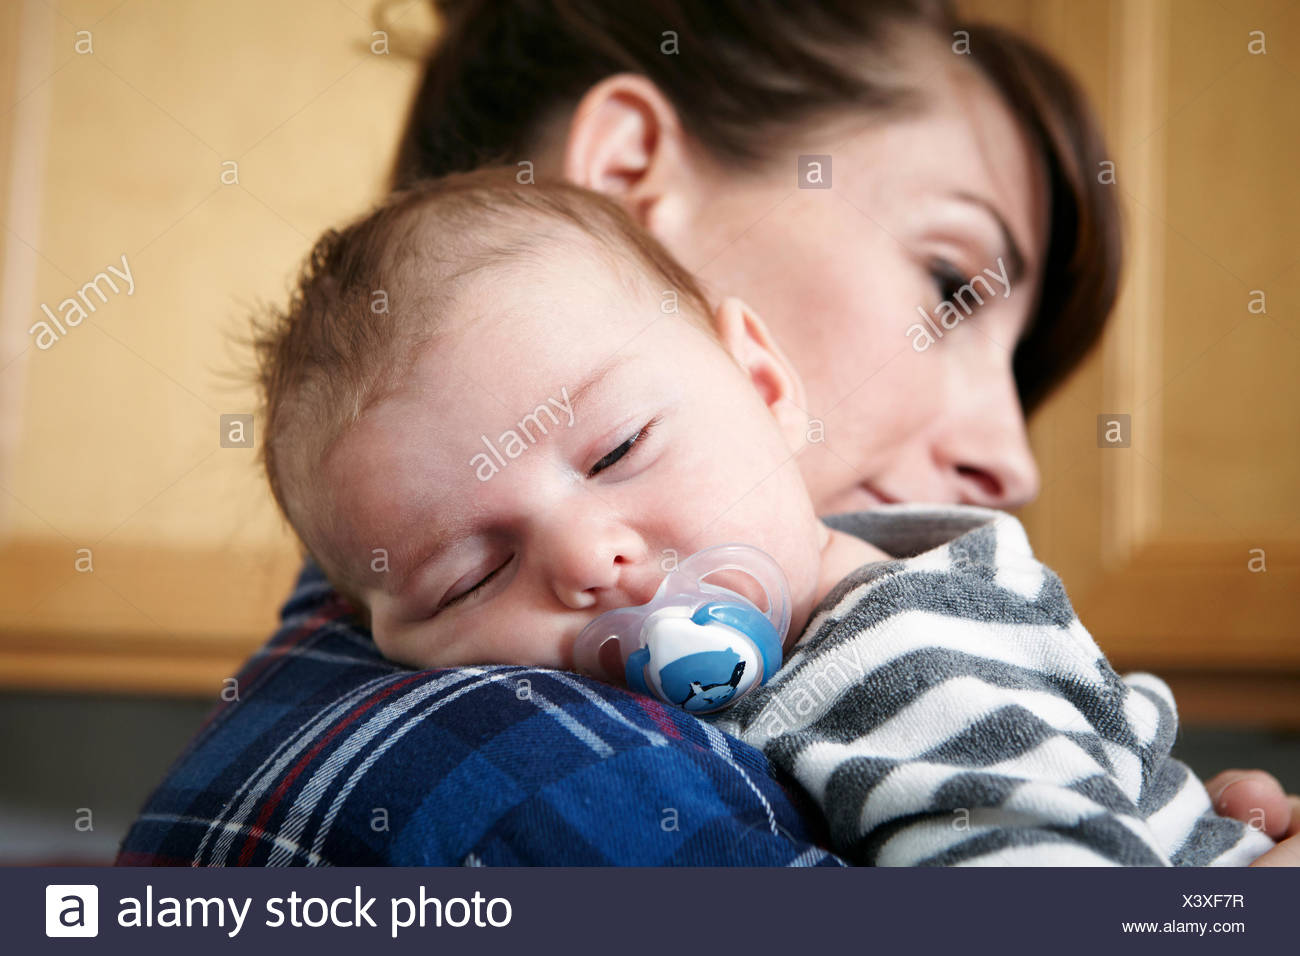 Mother holding sleeping baby boy - Stock Image